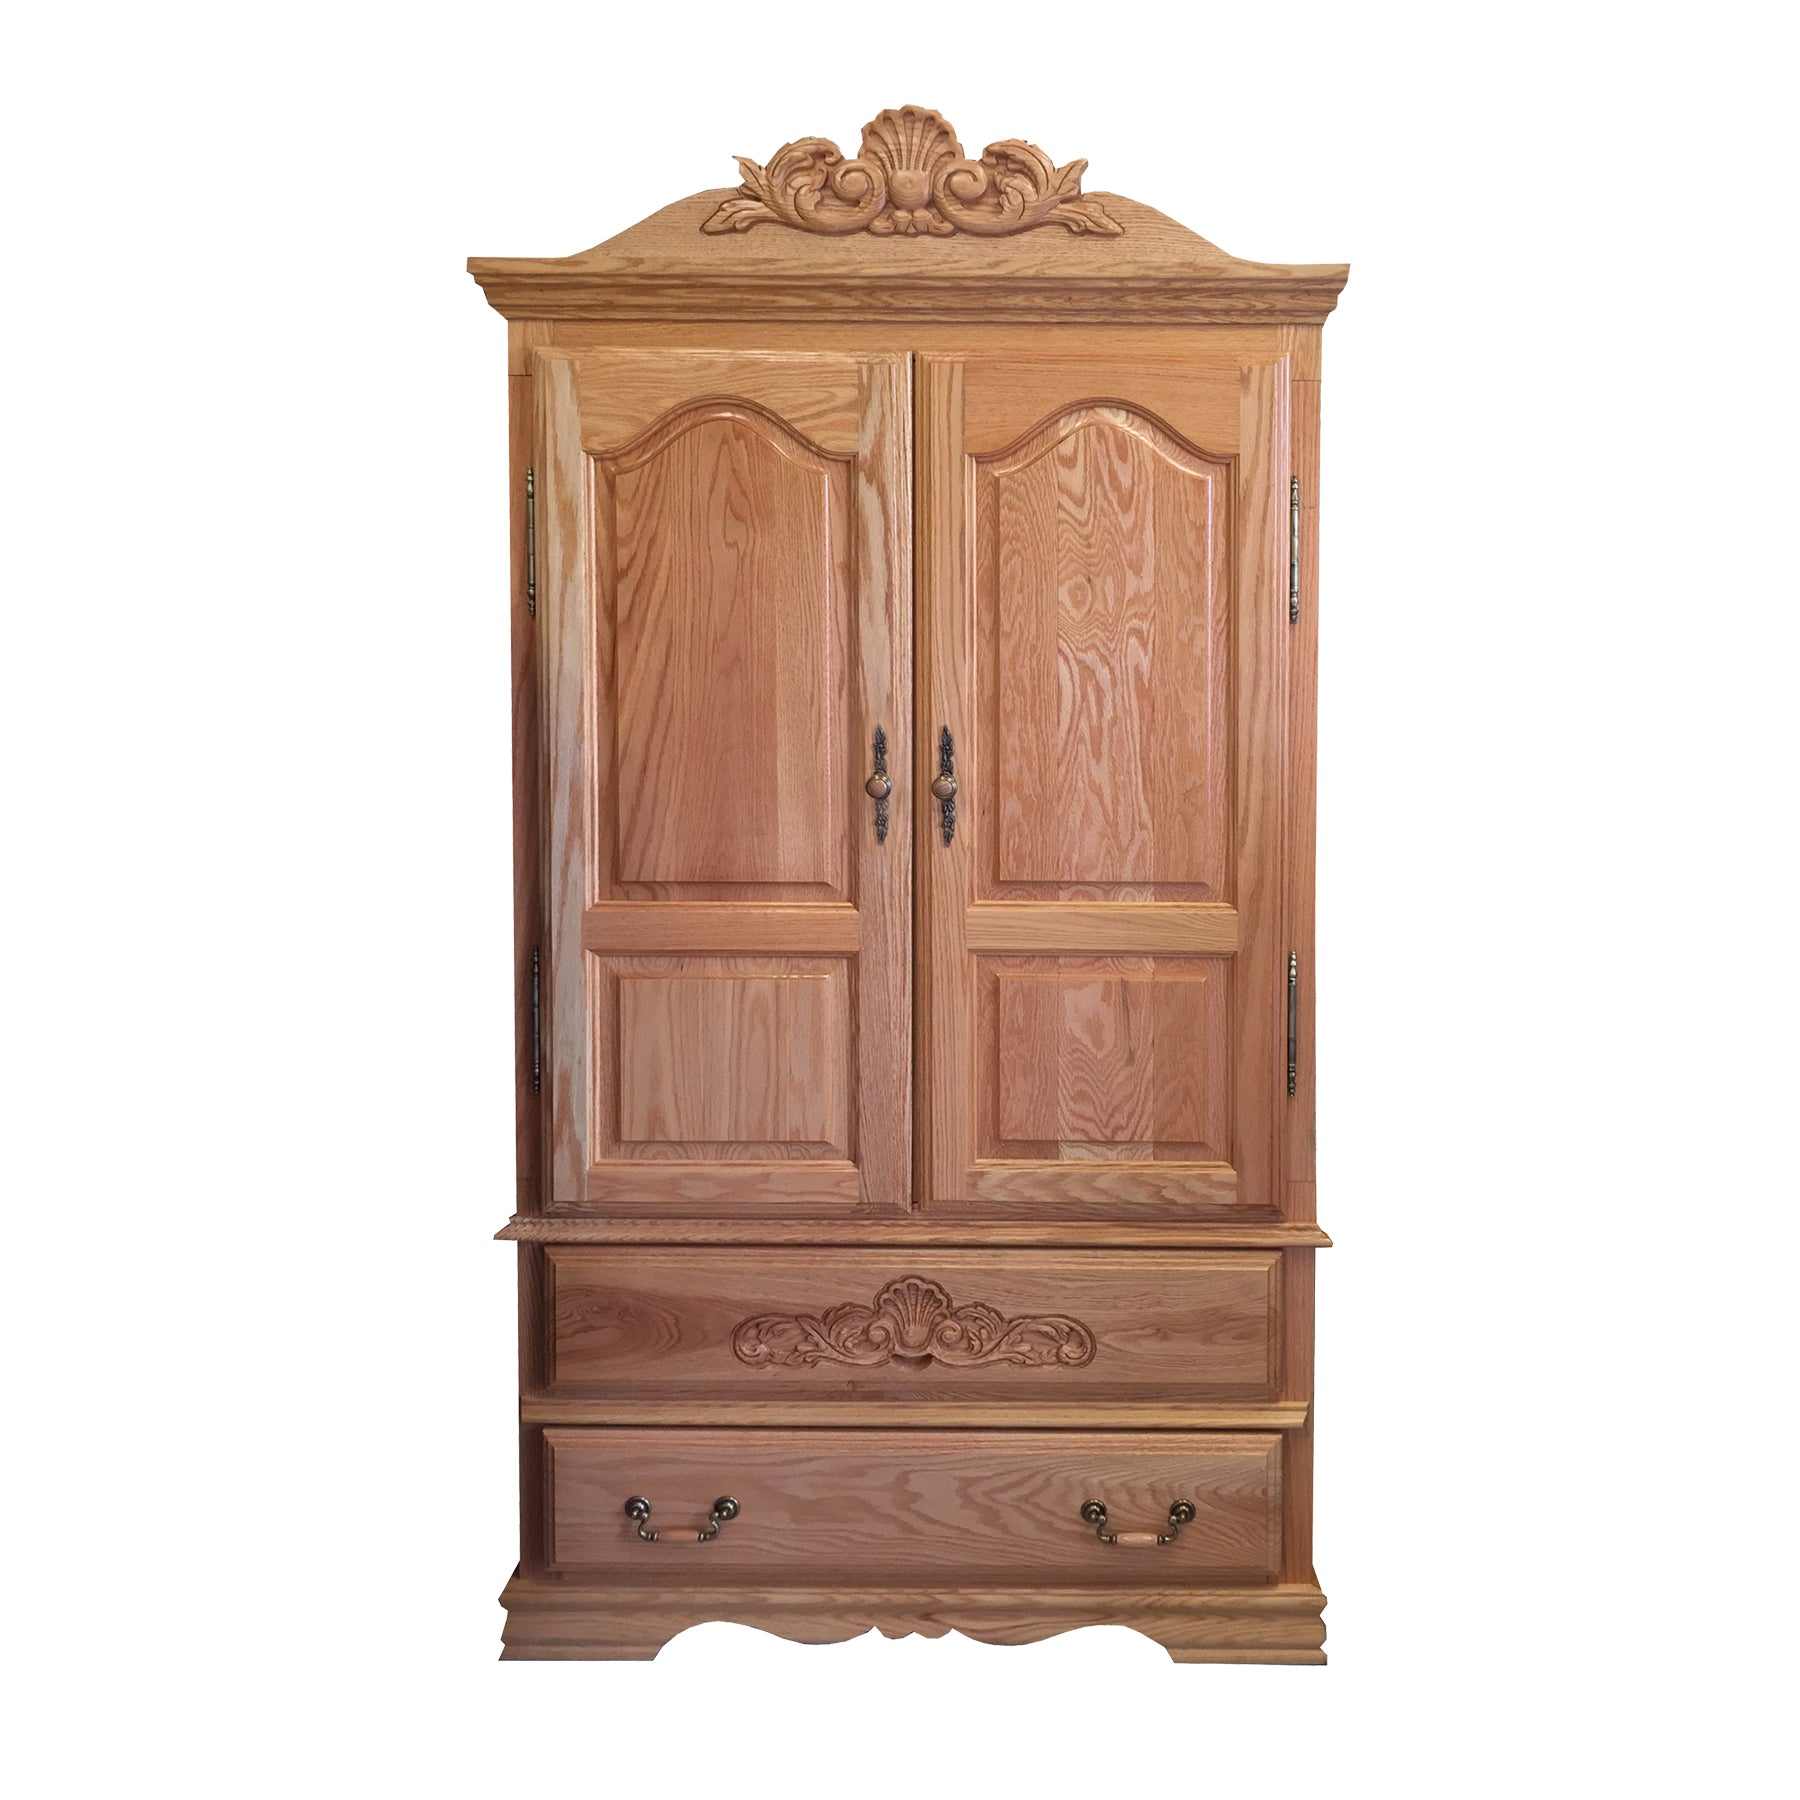 BB 508 Heirloom Oak 5 TV Armoire with Carving